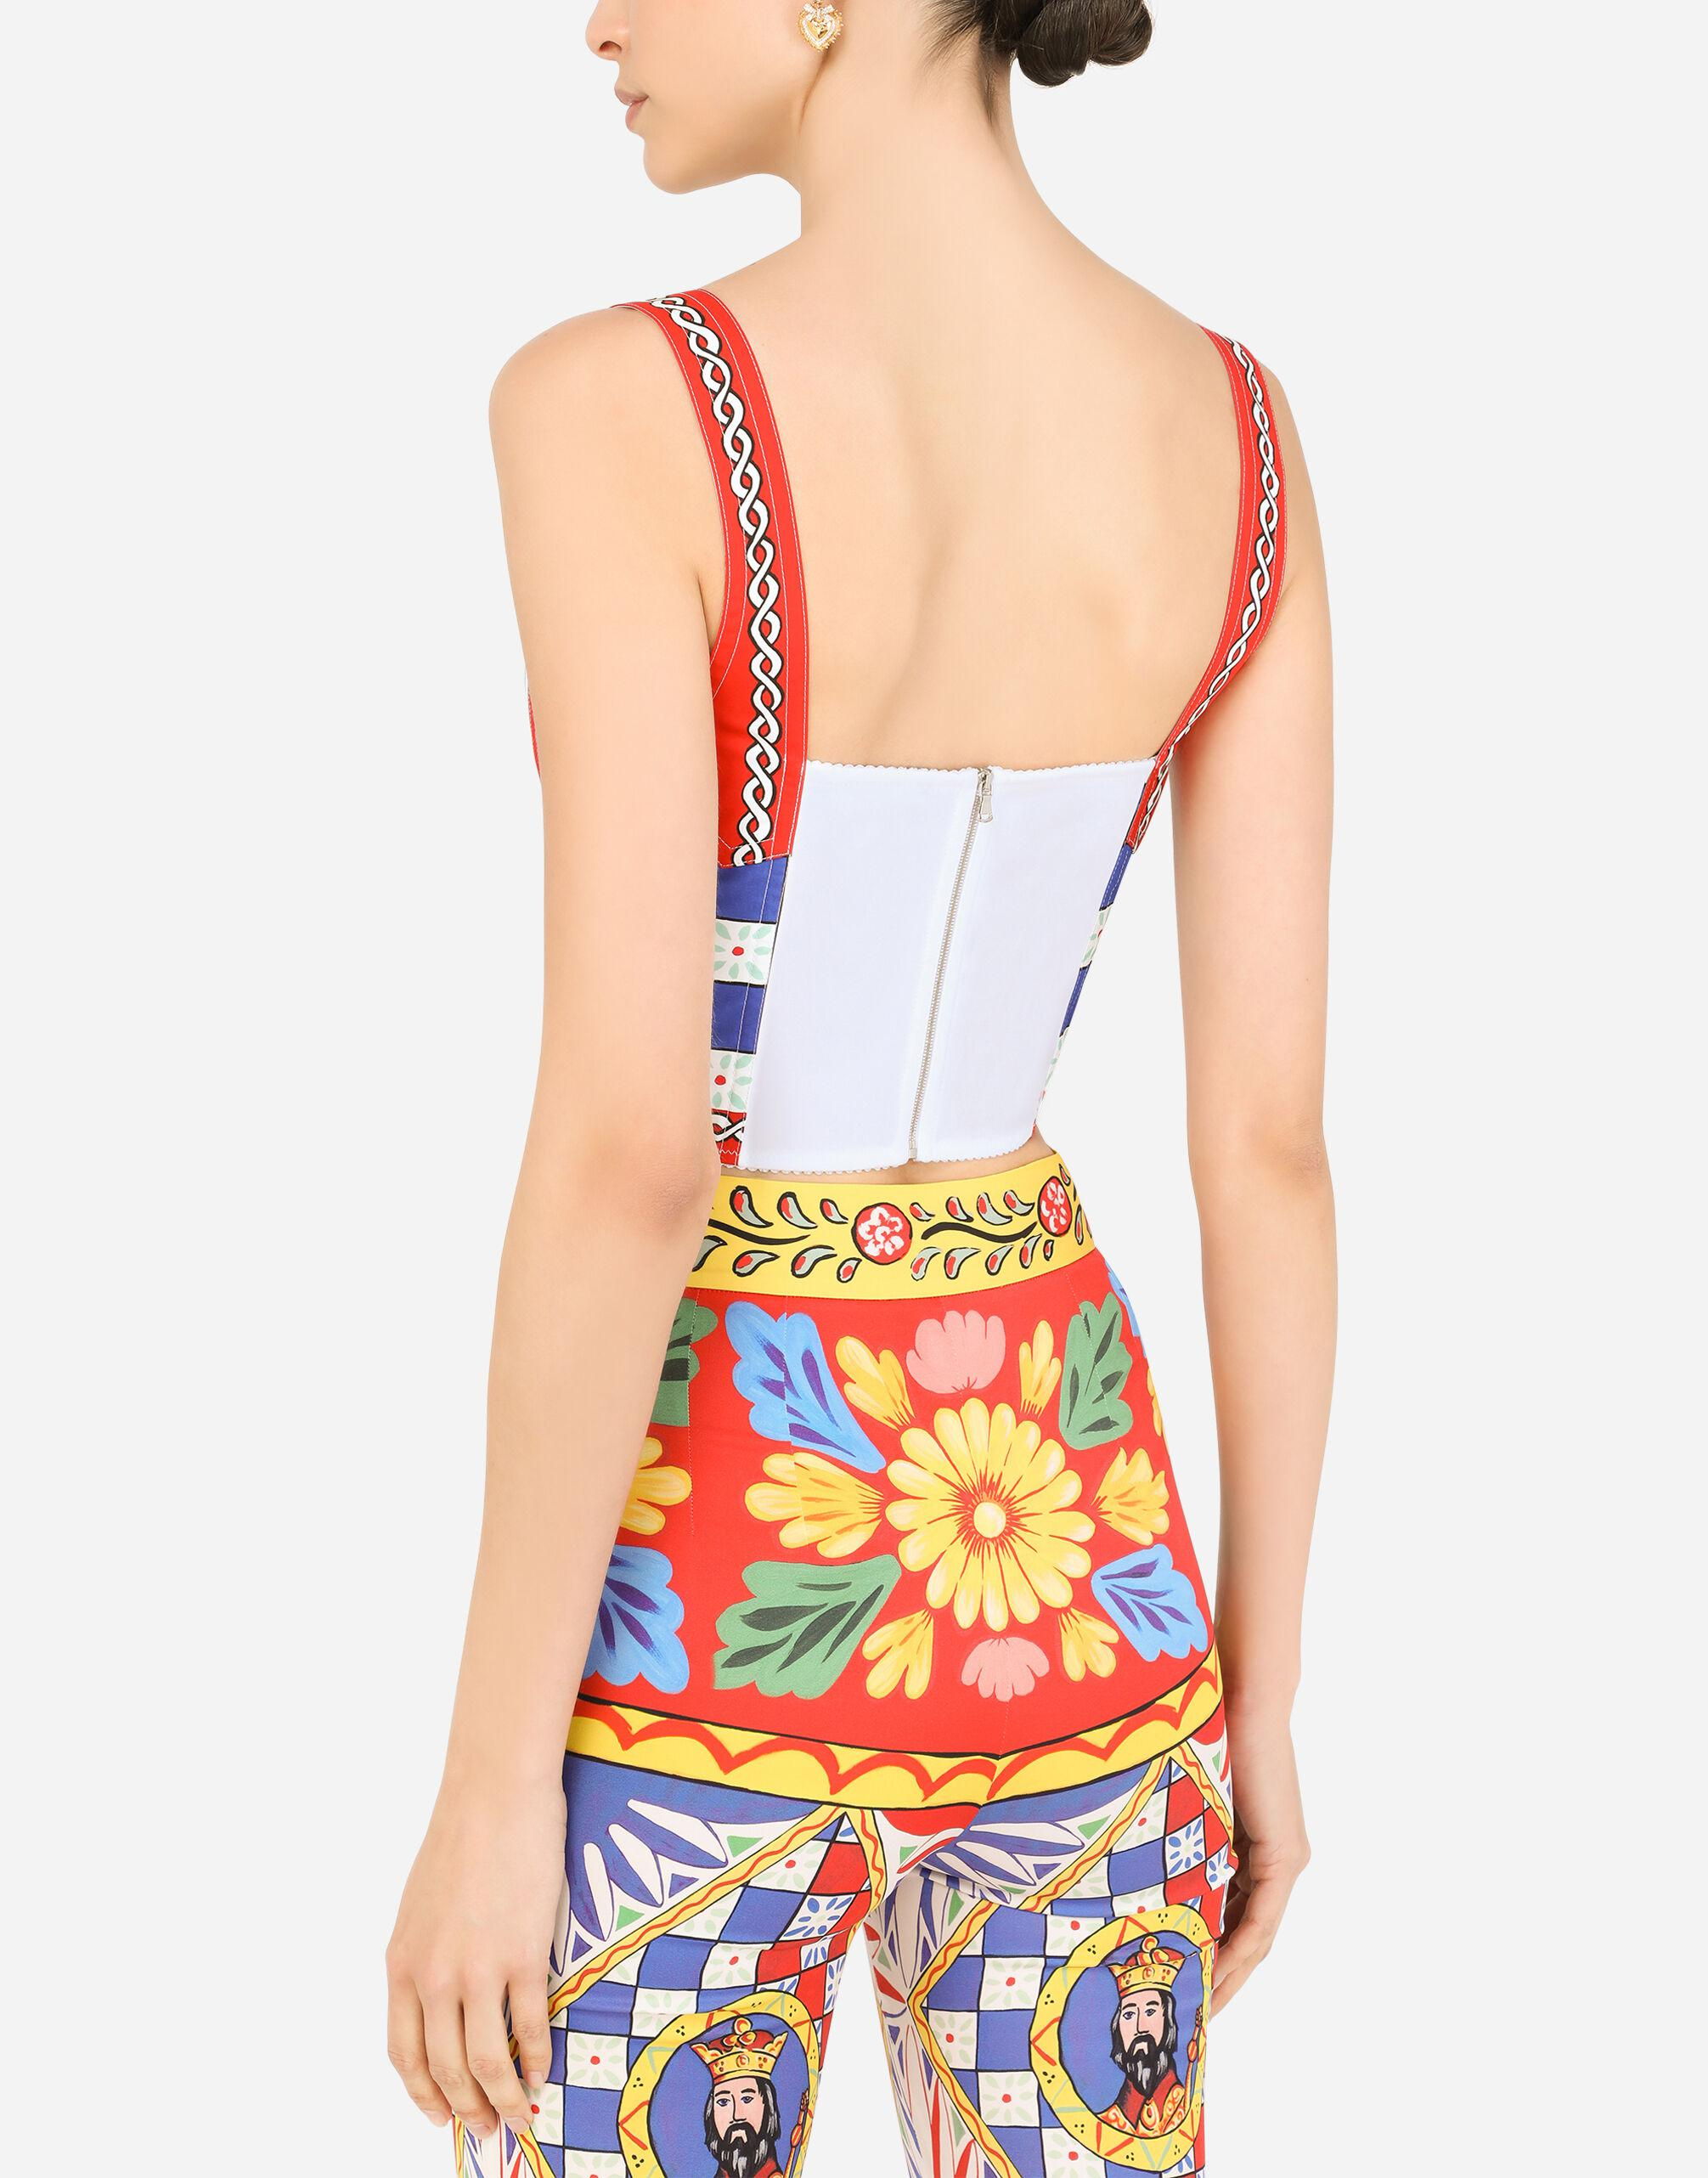 Carretto-print charmeuse bustier top 3